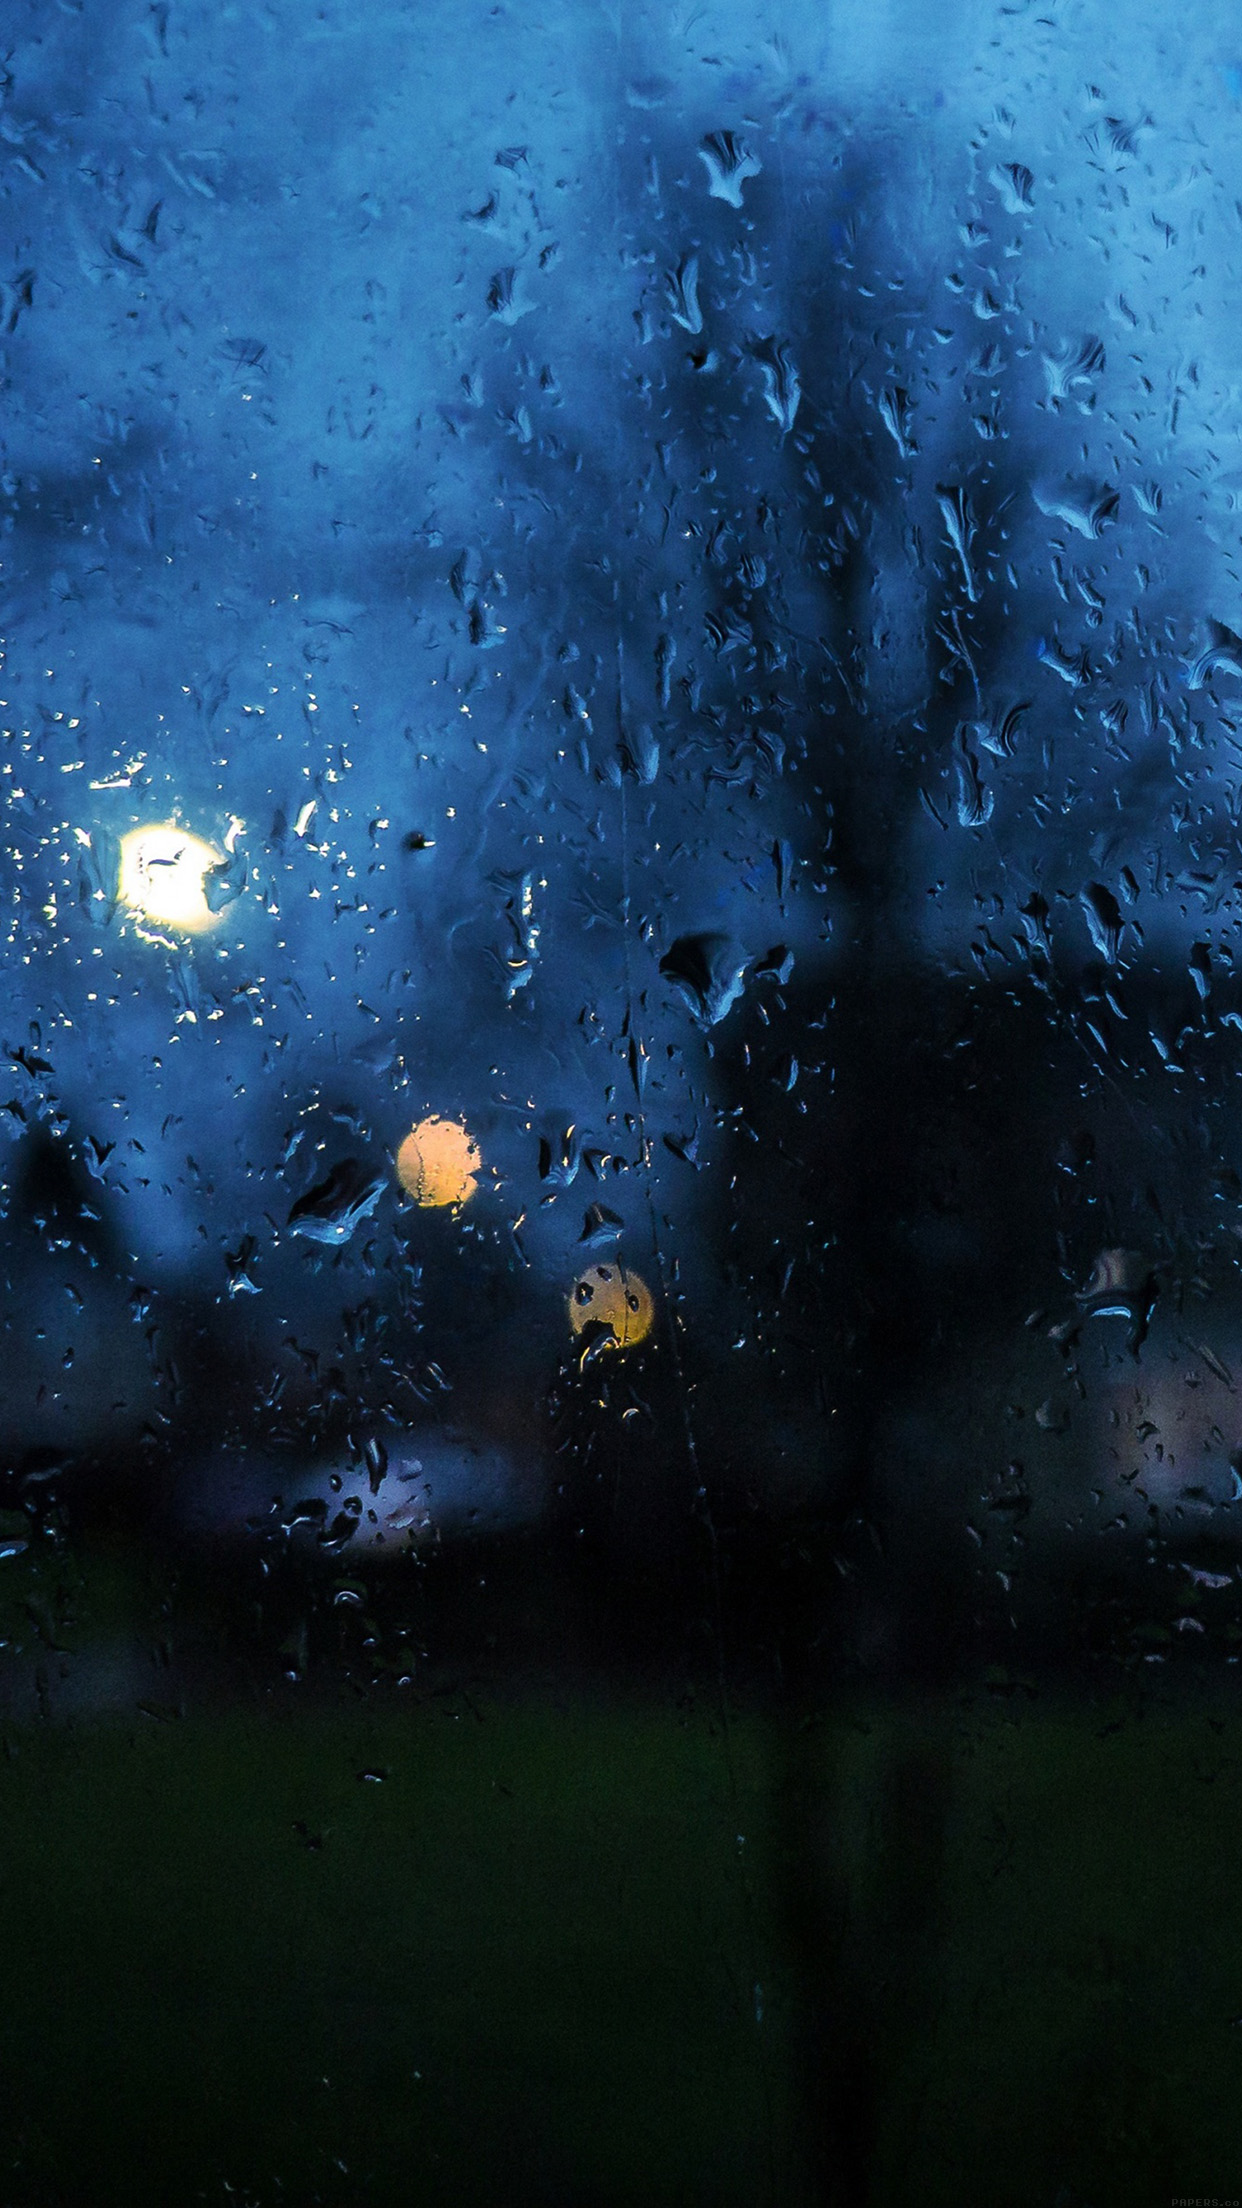 mi62-good-to-stay-home-rainy-window - Papers.co